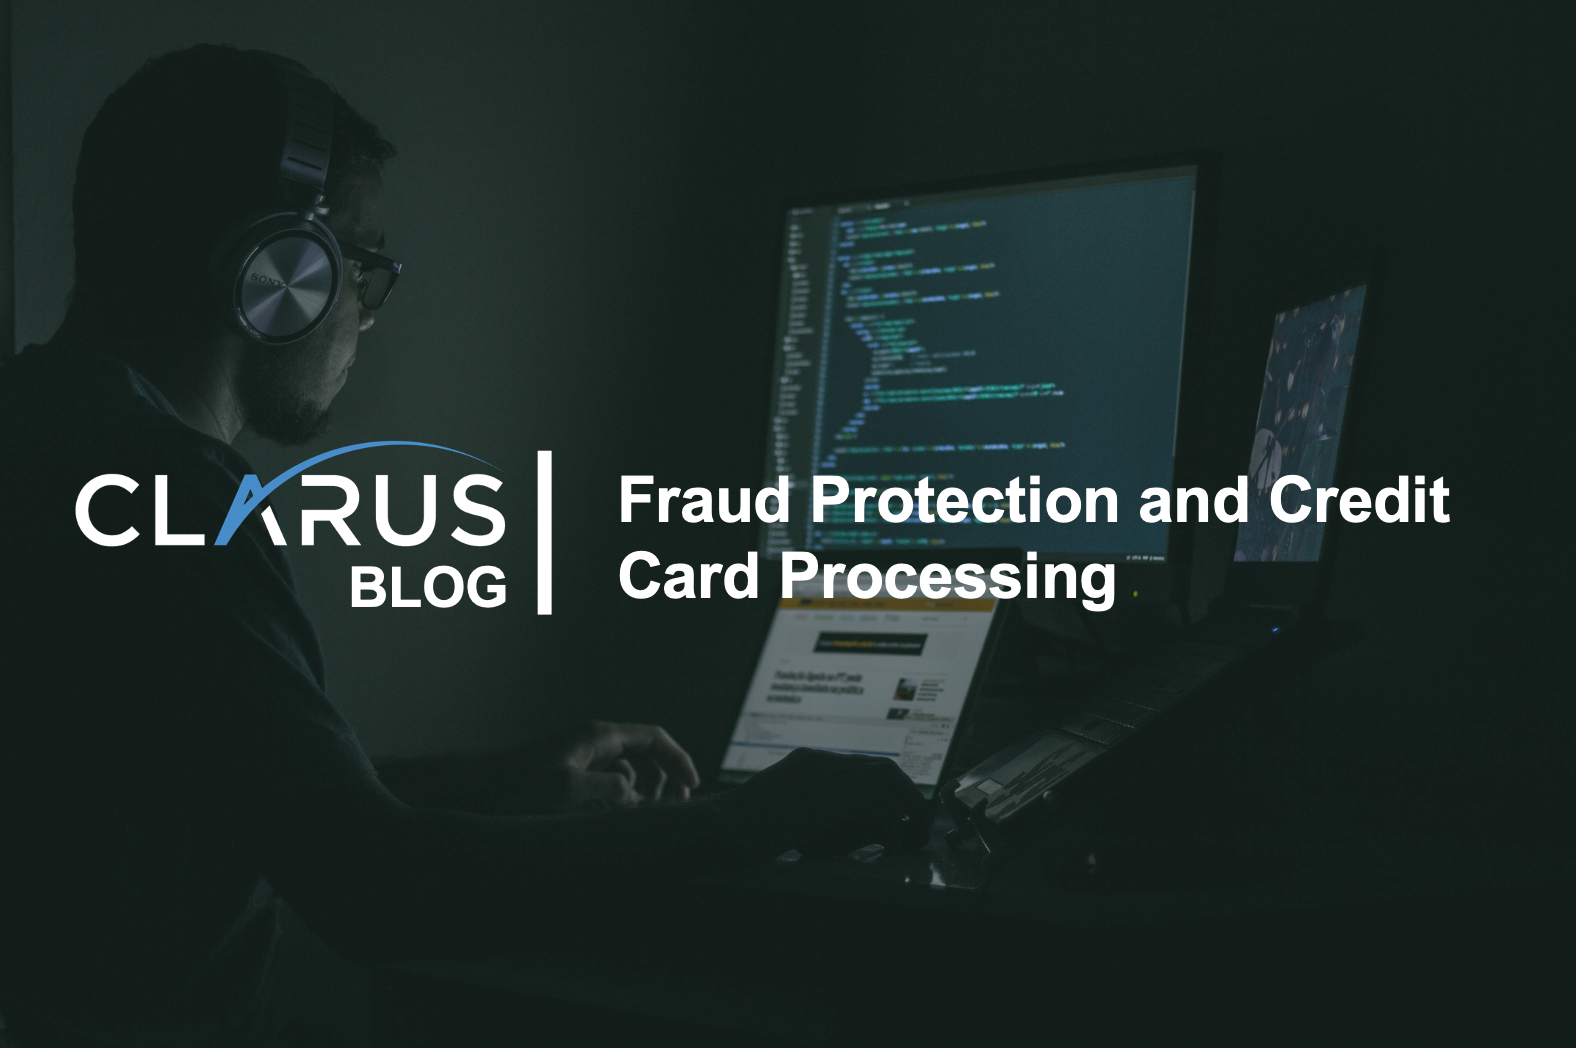 Fraud Protection and Credit Card Processing